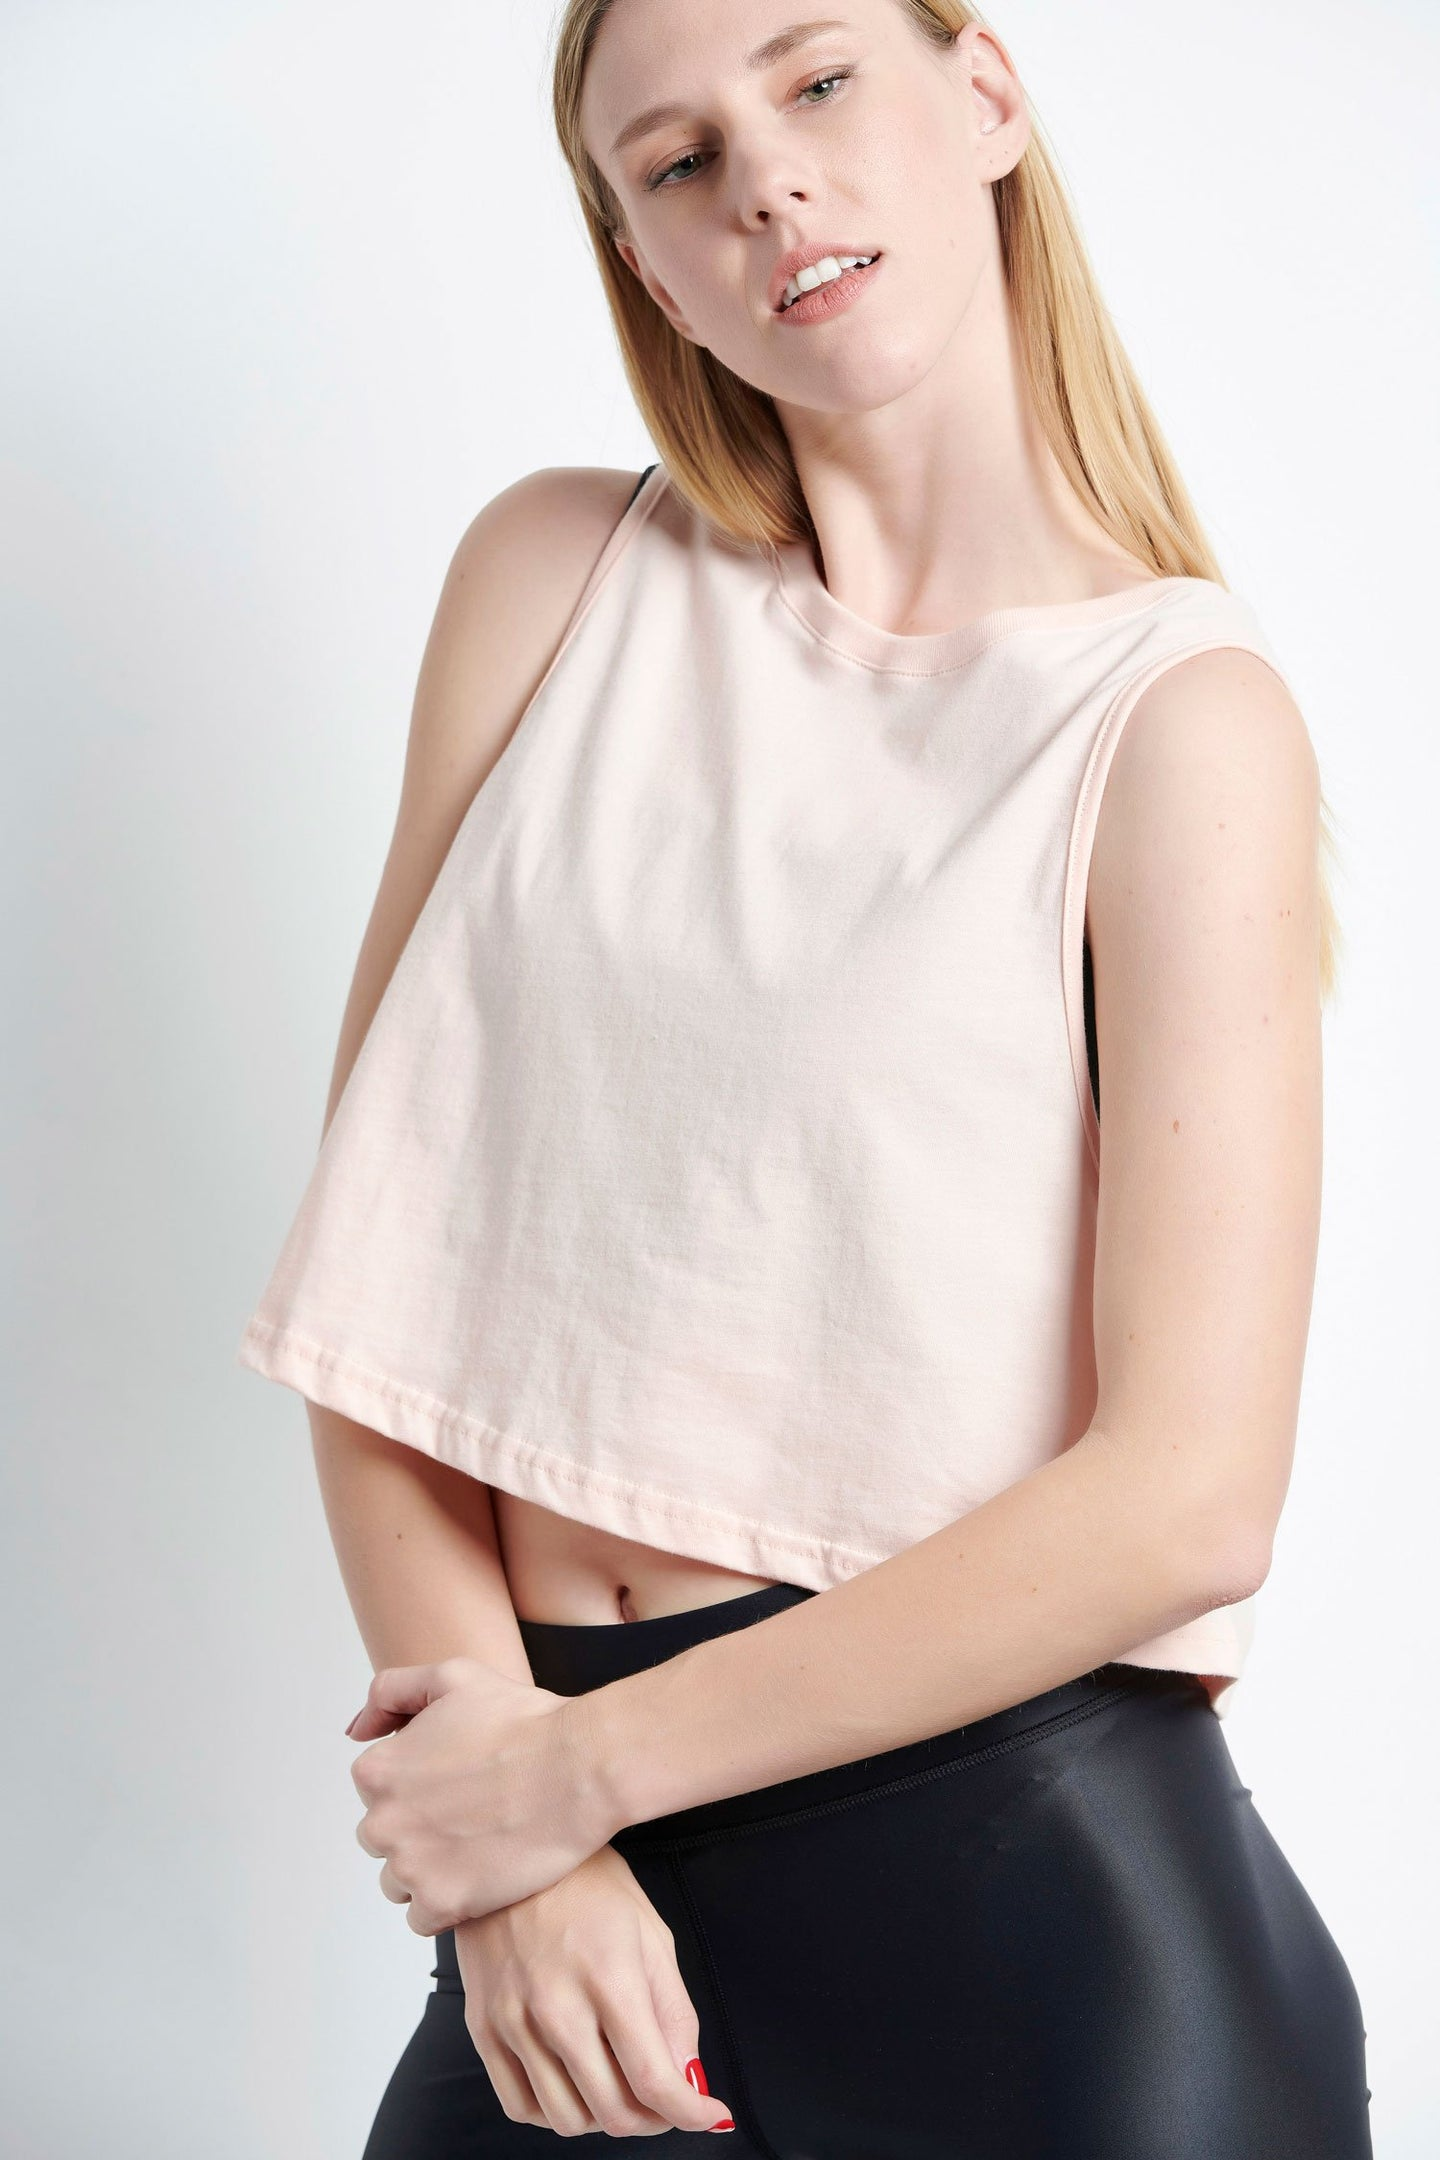 Ärmelloses Cropped Top - lachs